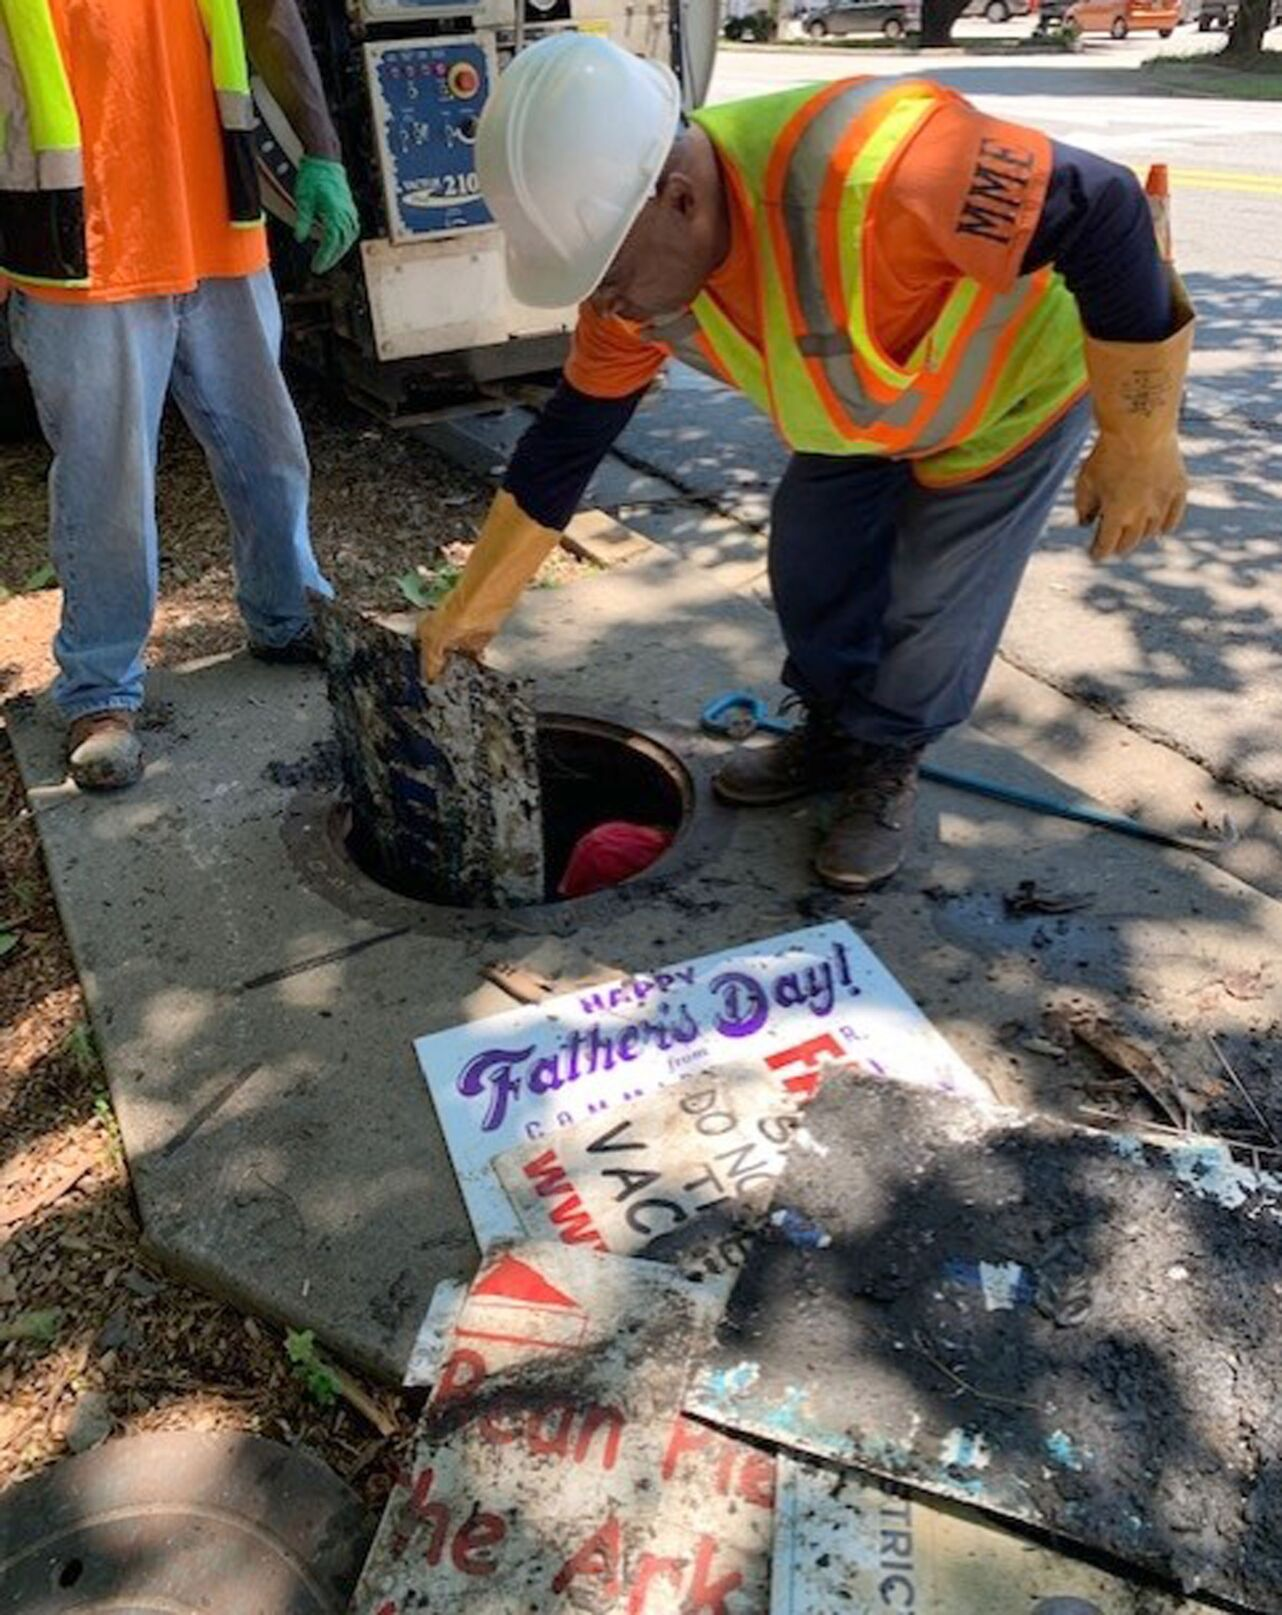 070721_MNS_SFulton_signs_002 worker pulls yard sign from drain